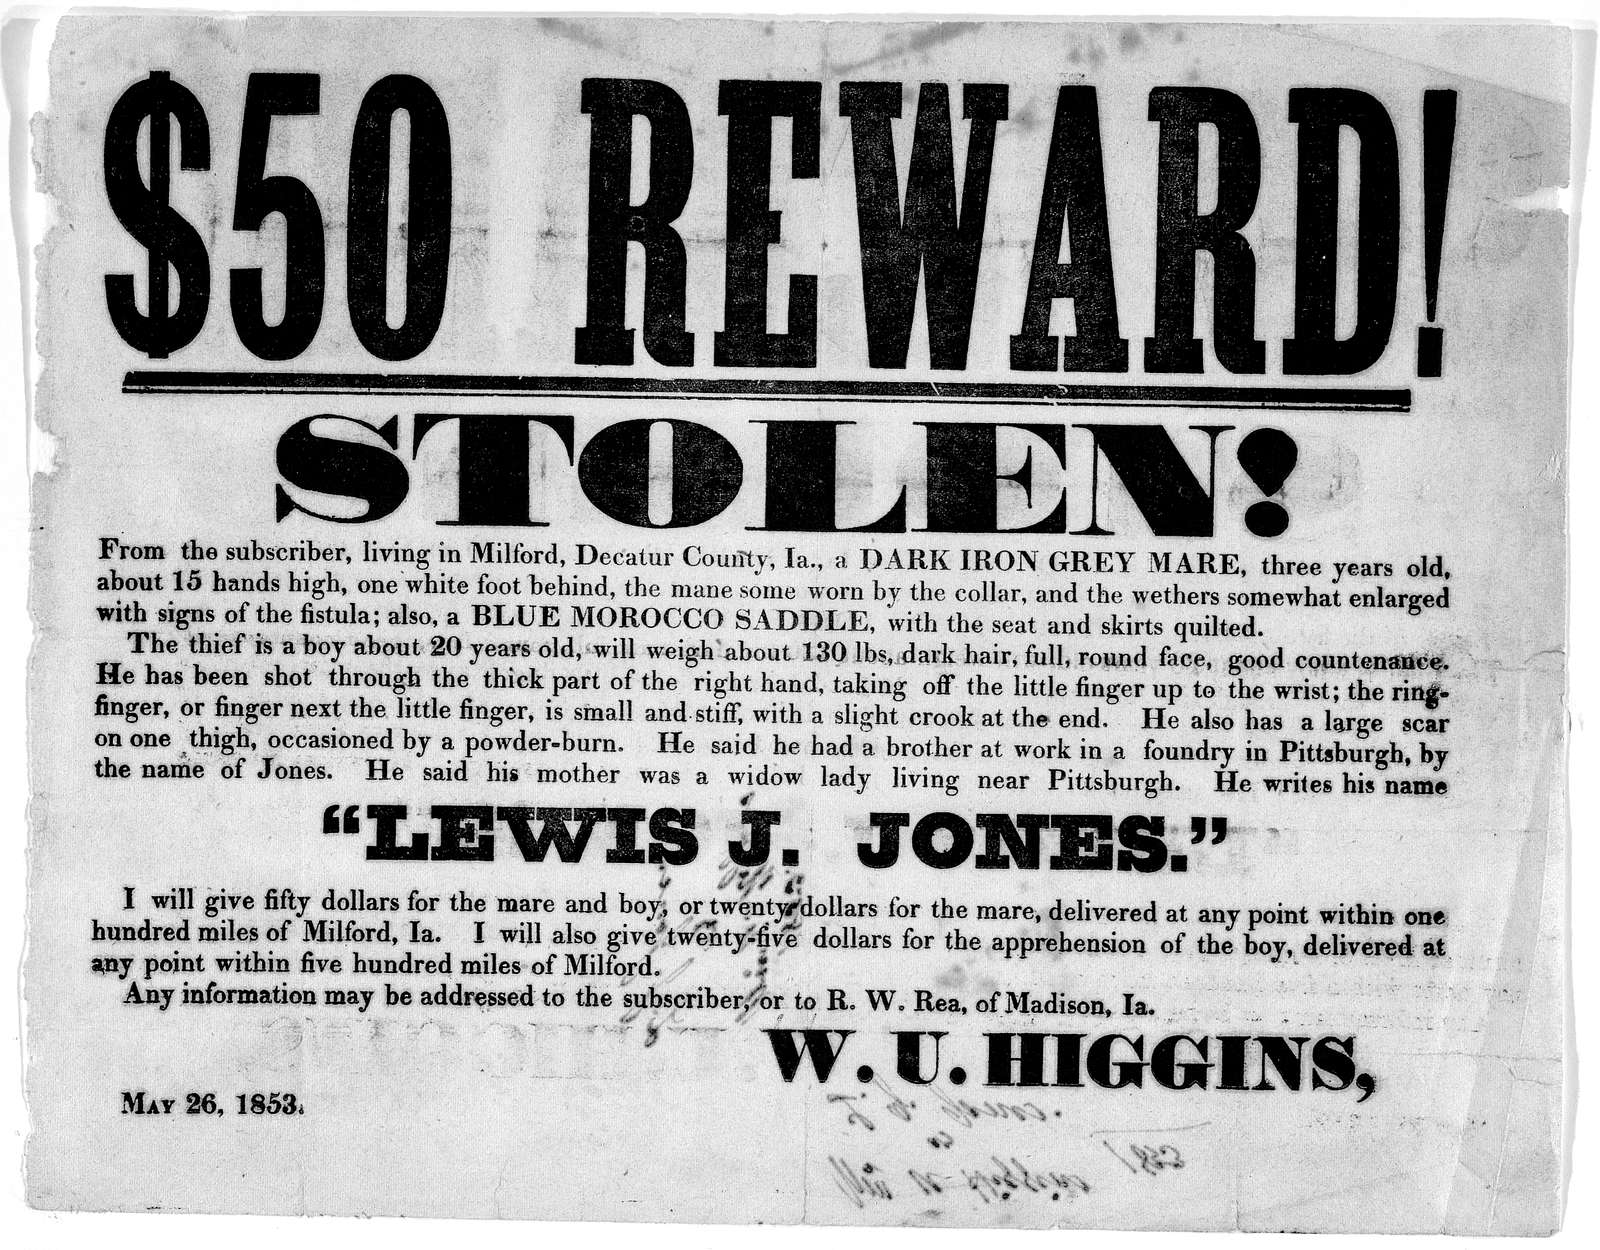 $50 reward! stolen! from the subscriber living in Milford, Decatur County, Ia. a dark iron gray mare, three years old ... The thief is a boy about 20 years old ... [Offering a reward of fifty dollars for the mare and the boy or twenty dol